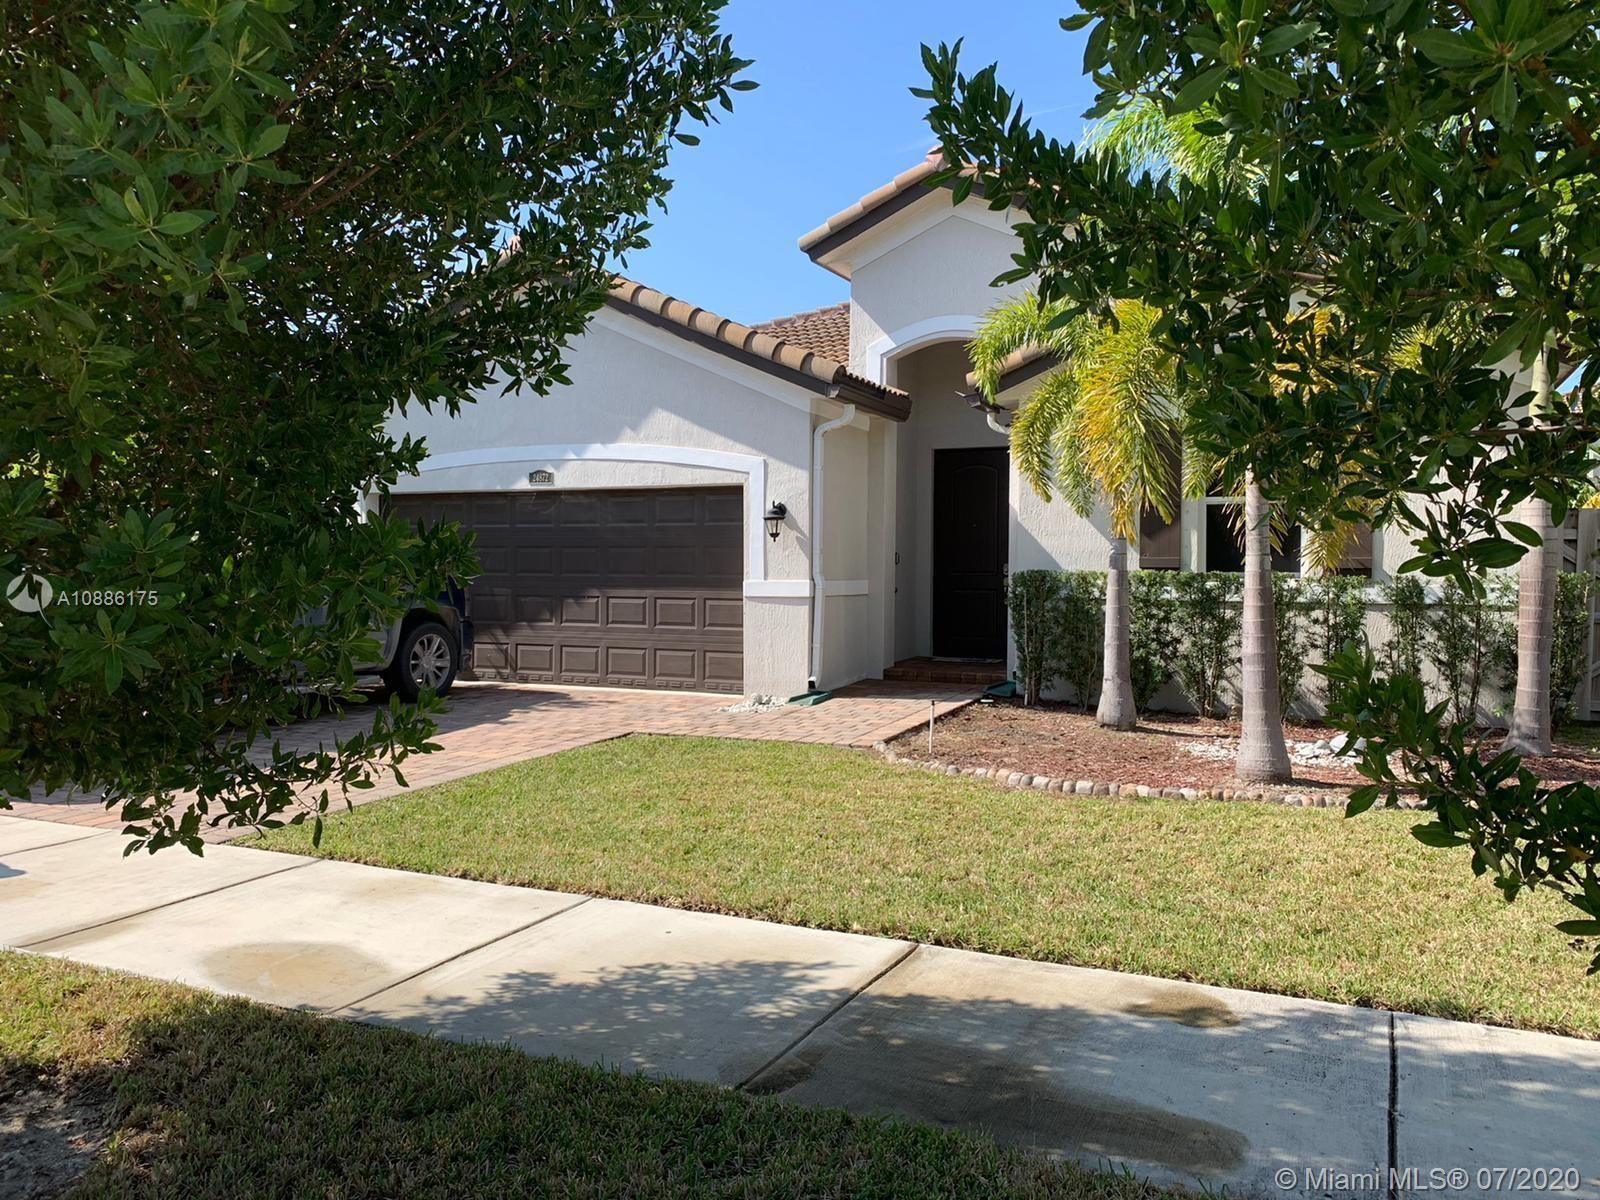 24872 SW 118 Ct Property Photo - Homestead, FL real estate listing